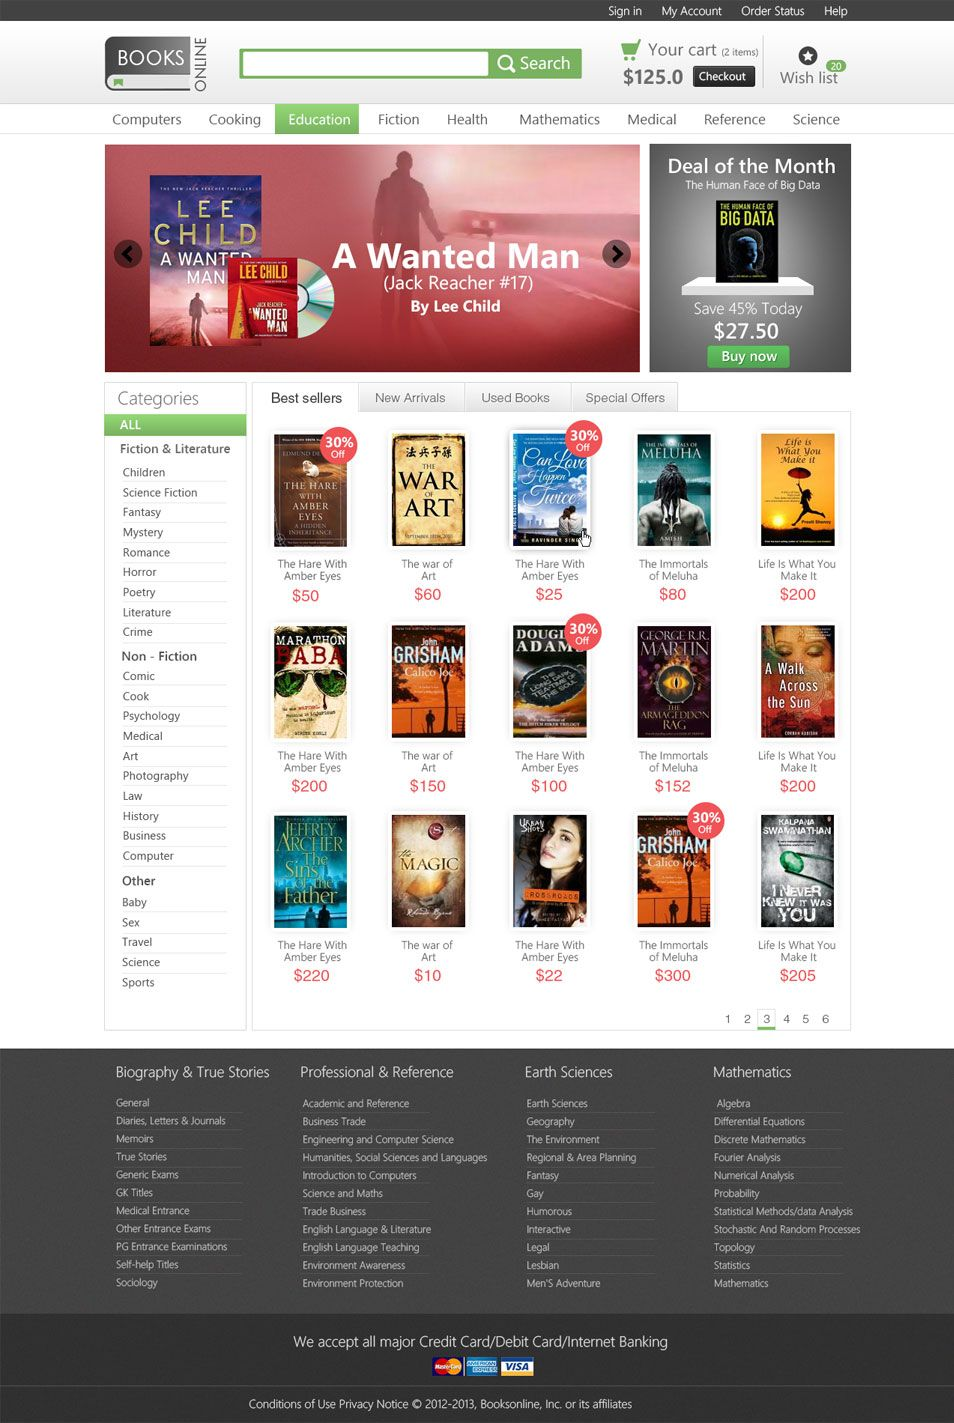 Free bookstore website template psd free psd webdesign layout free bookstore website template psd free psd webdesign layout maxwellsz